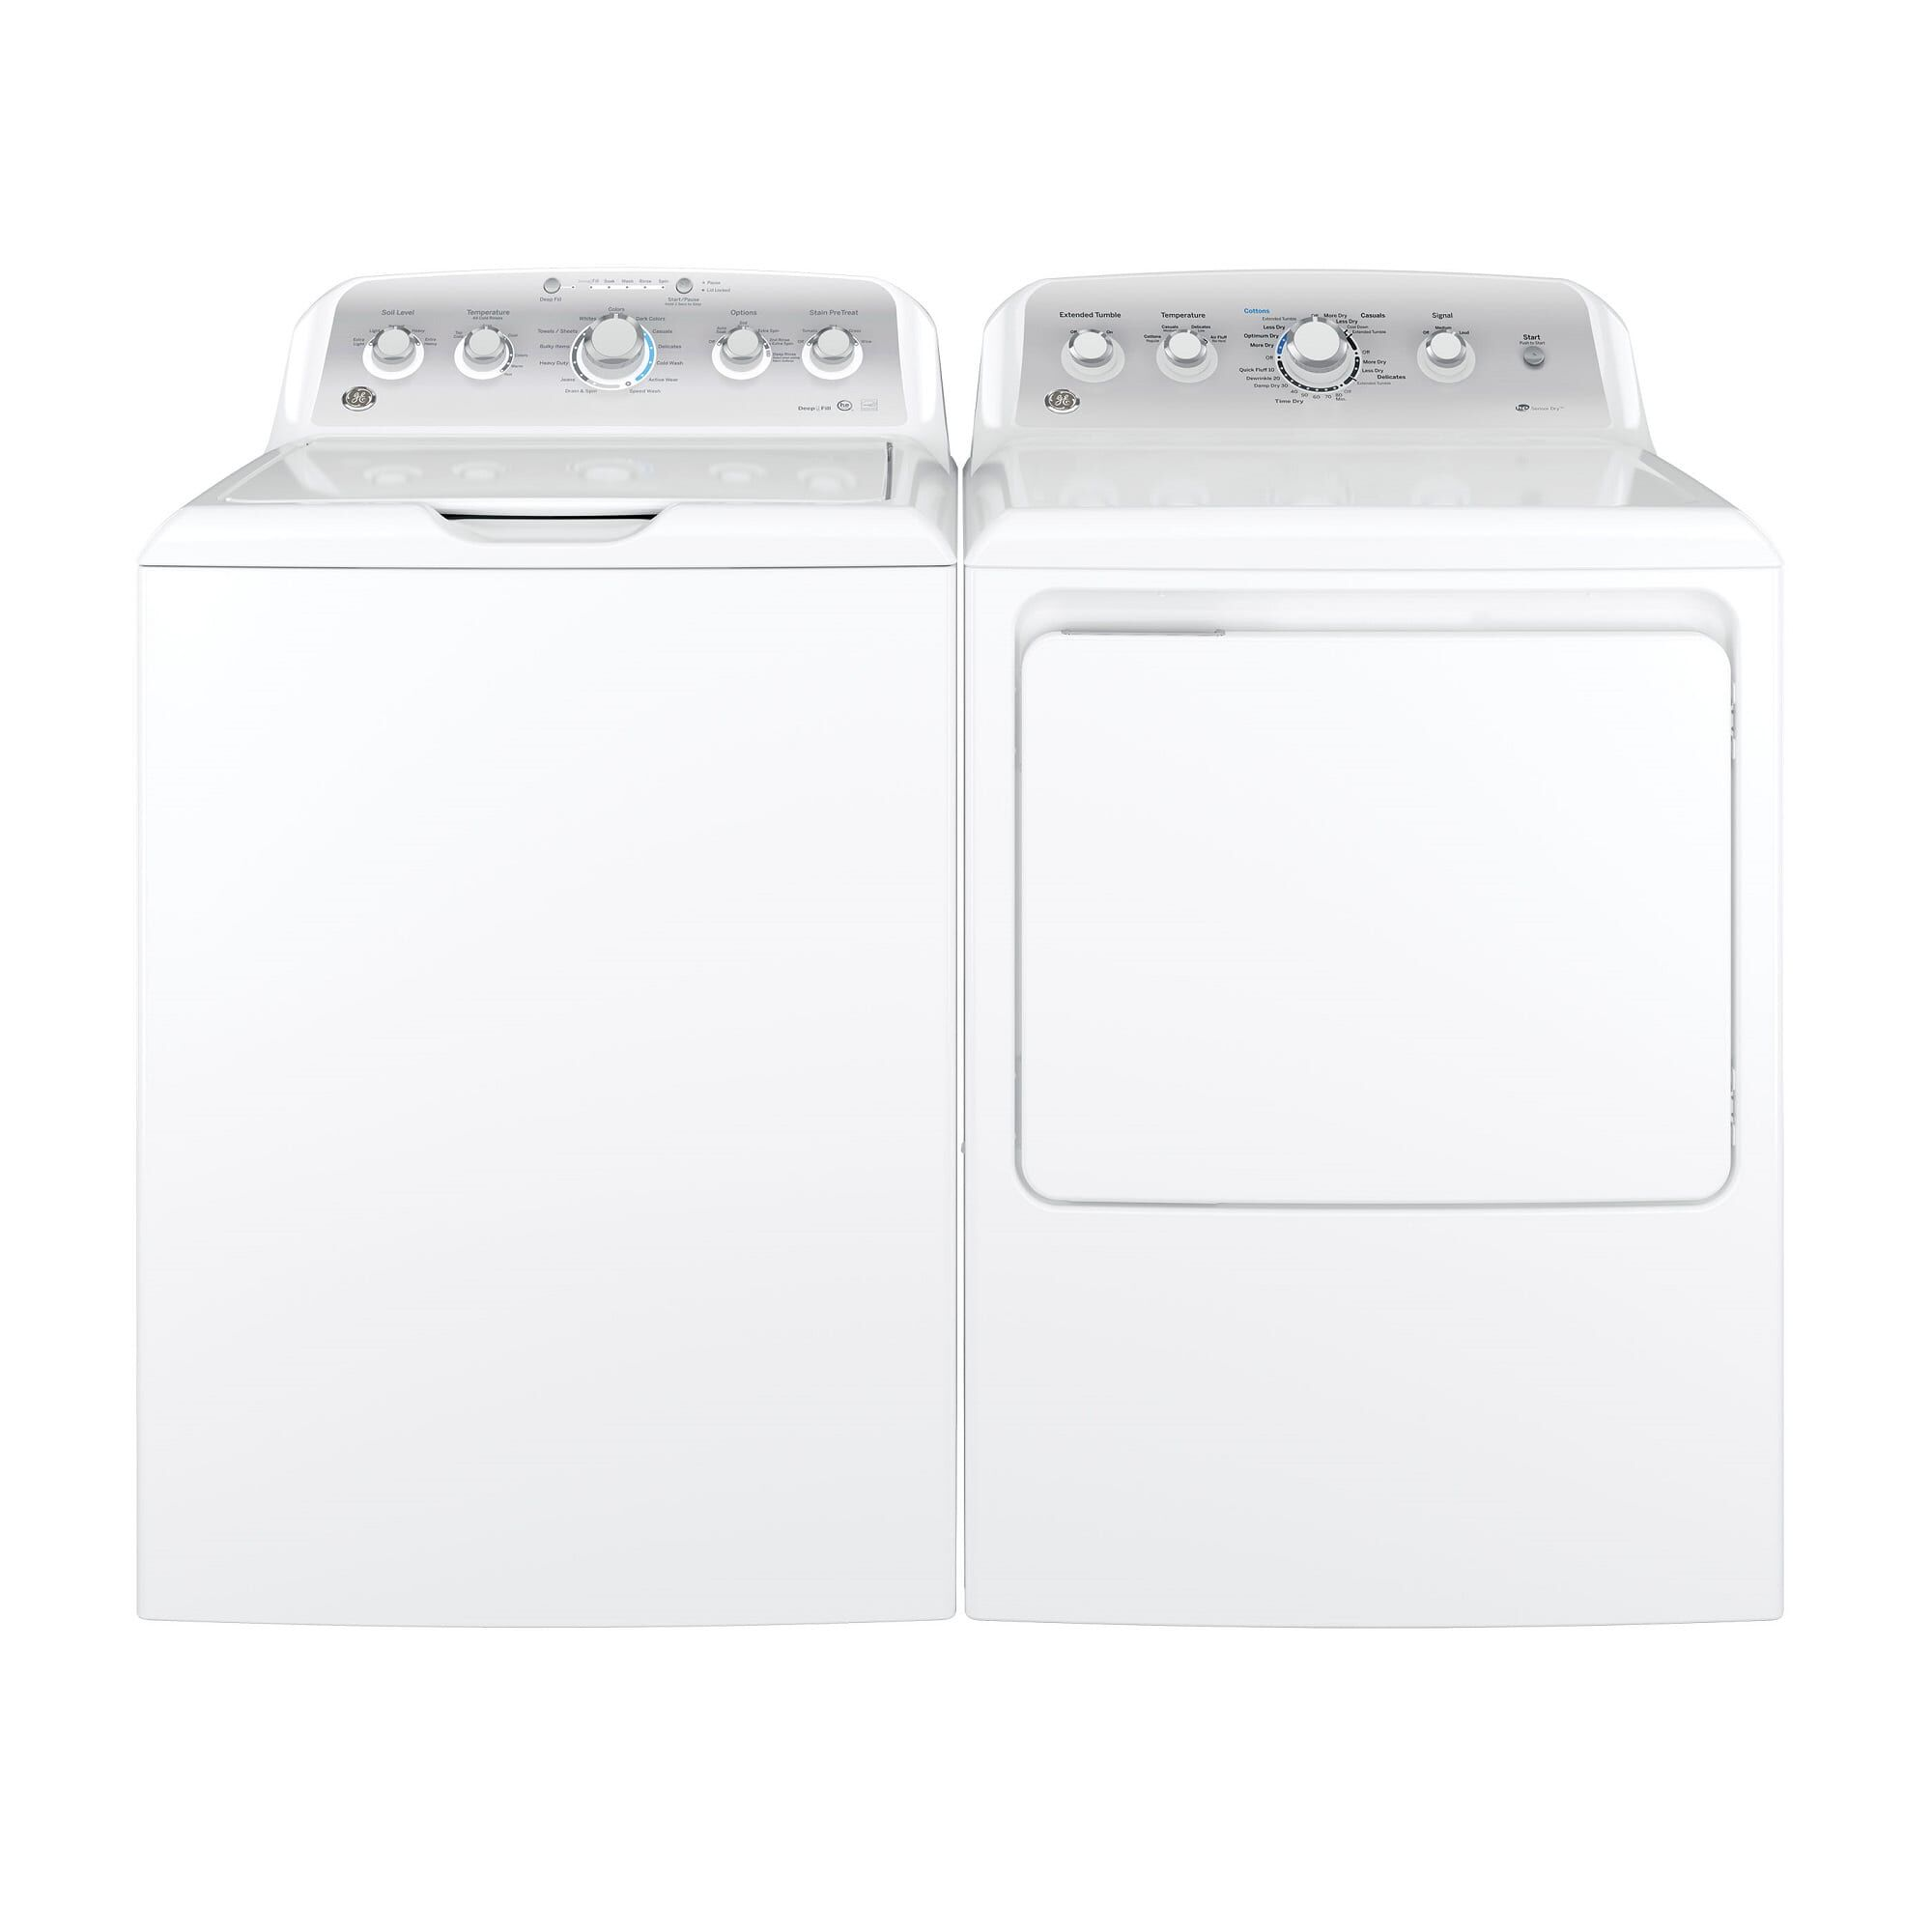 medium resolution of ge appliances washers dryers 4 4 cu ft he top load washer 7 2 cu ft electric dryer